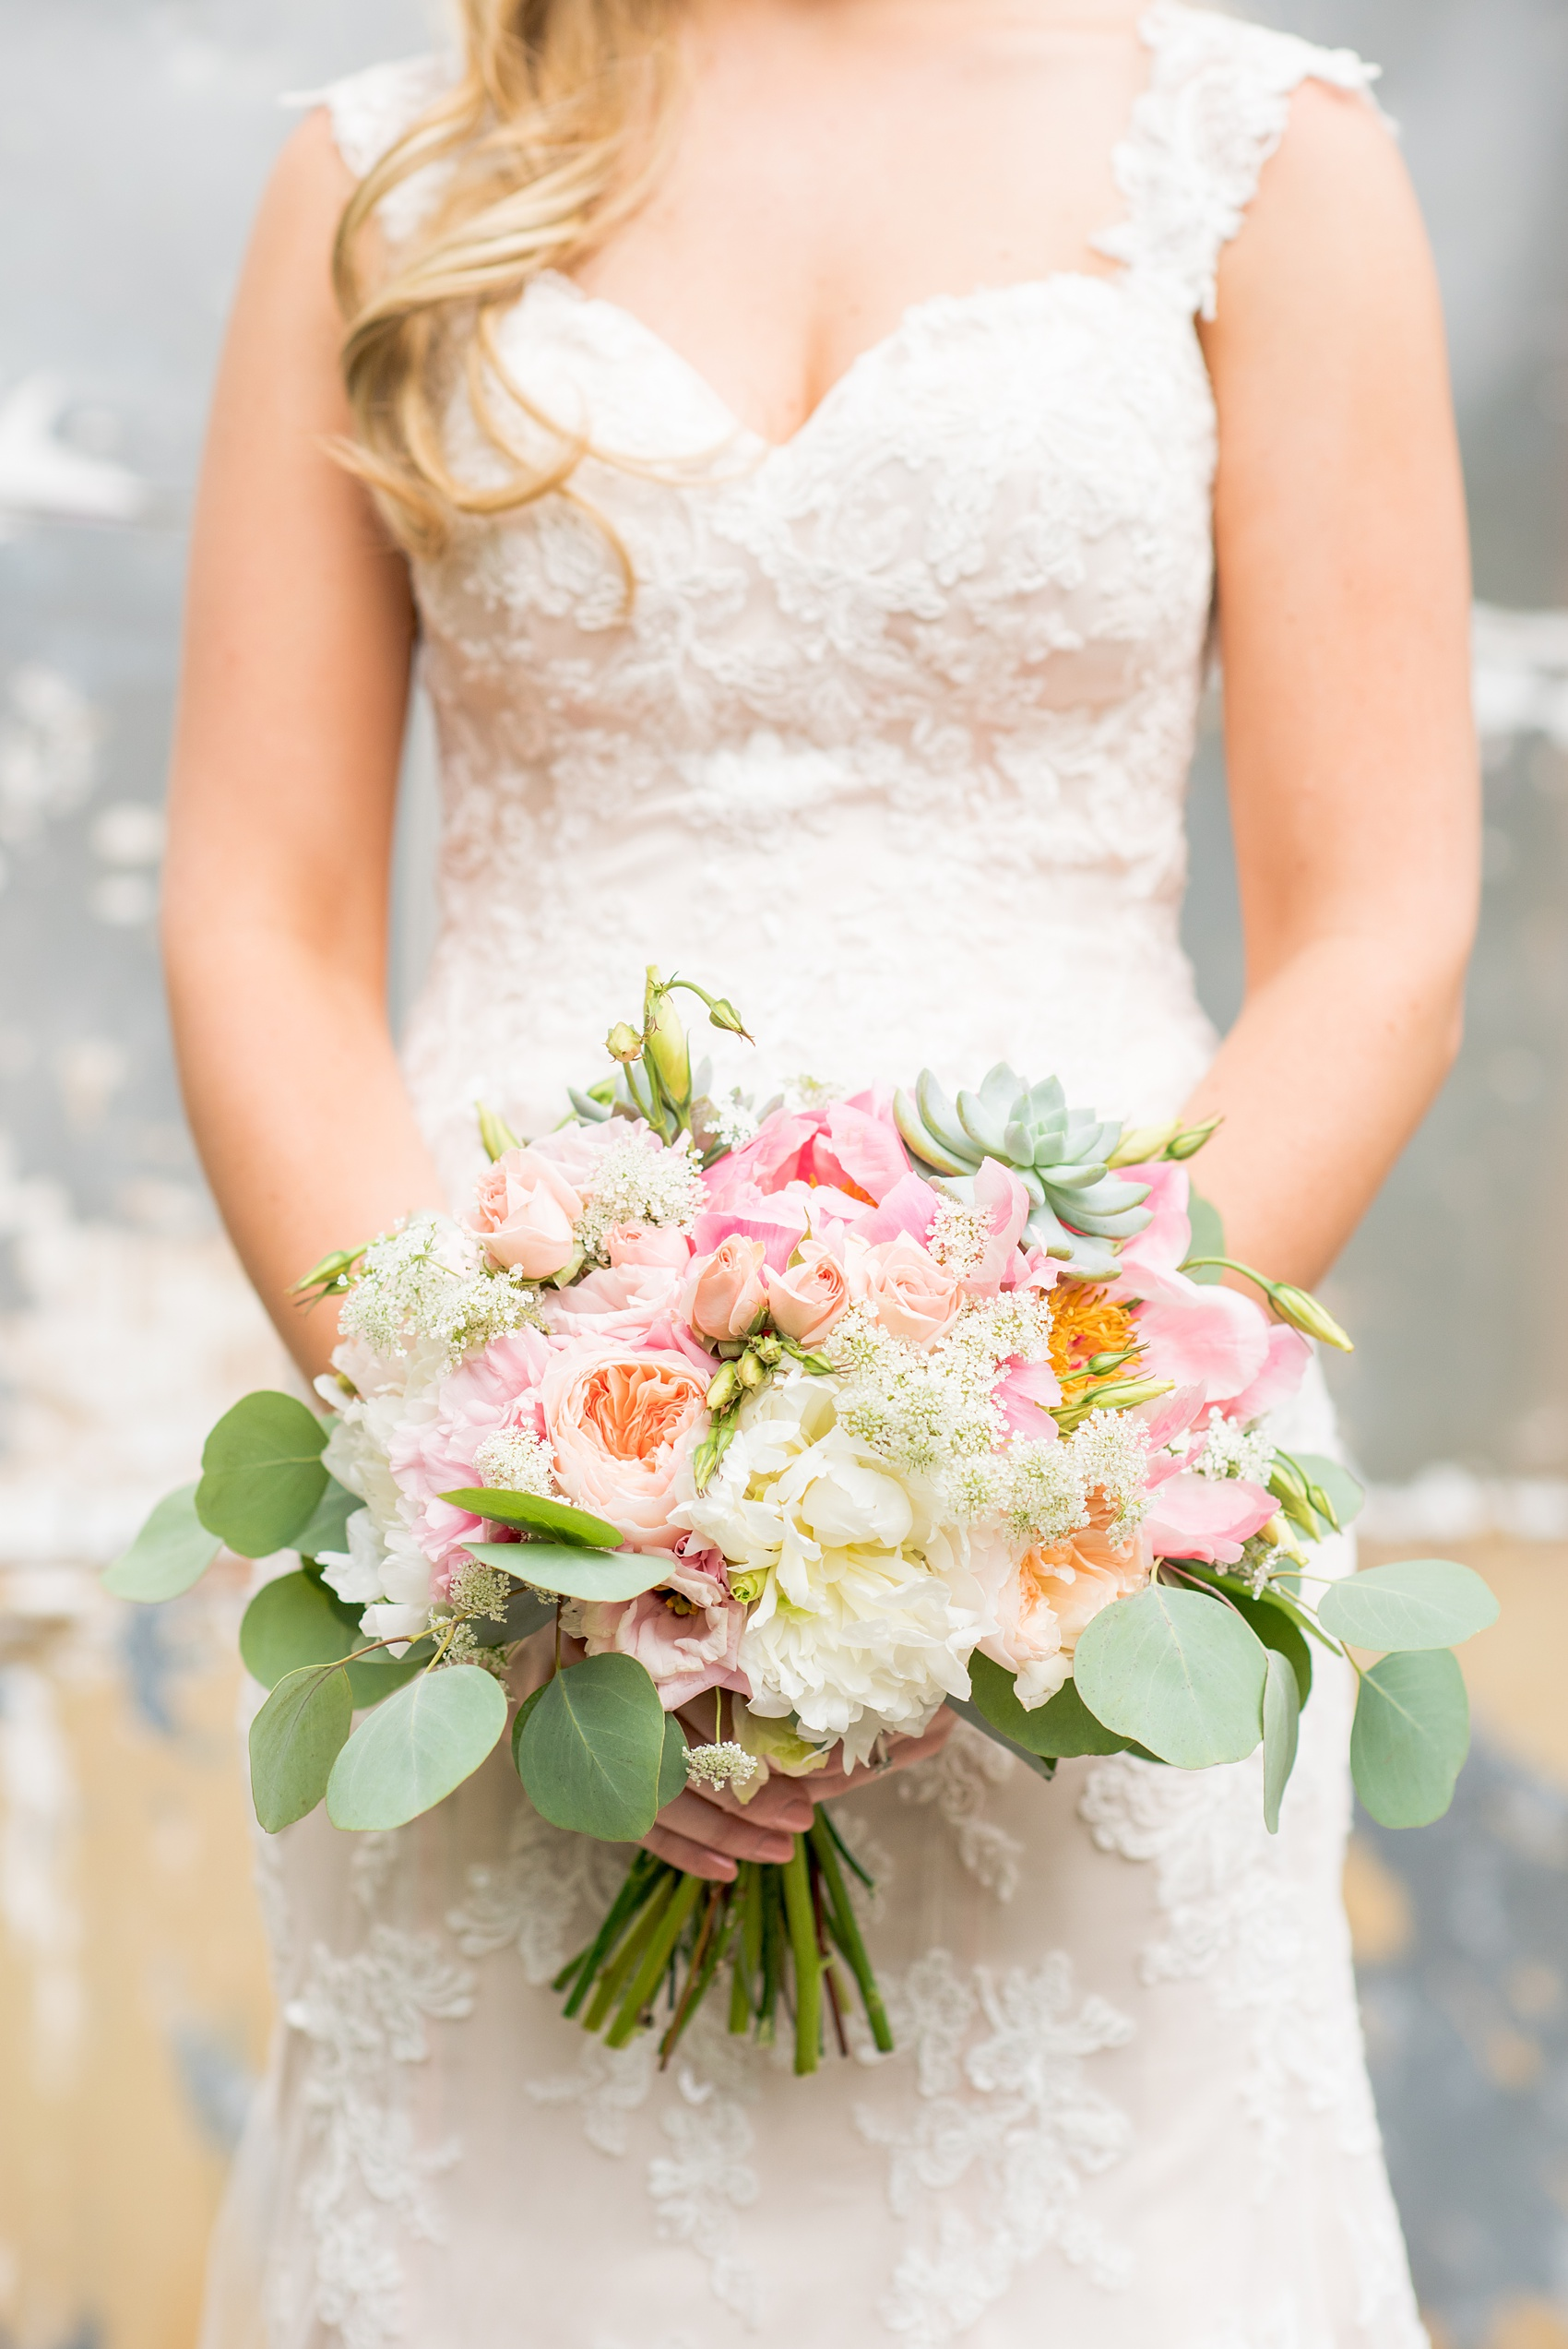 Mikkel Paige Photography photos from a wedding in Durham, North Carolina. Picture of the bride's bouquet of peonies, succulents and eucalyptus by Teacup Floral.